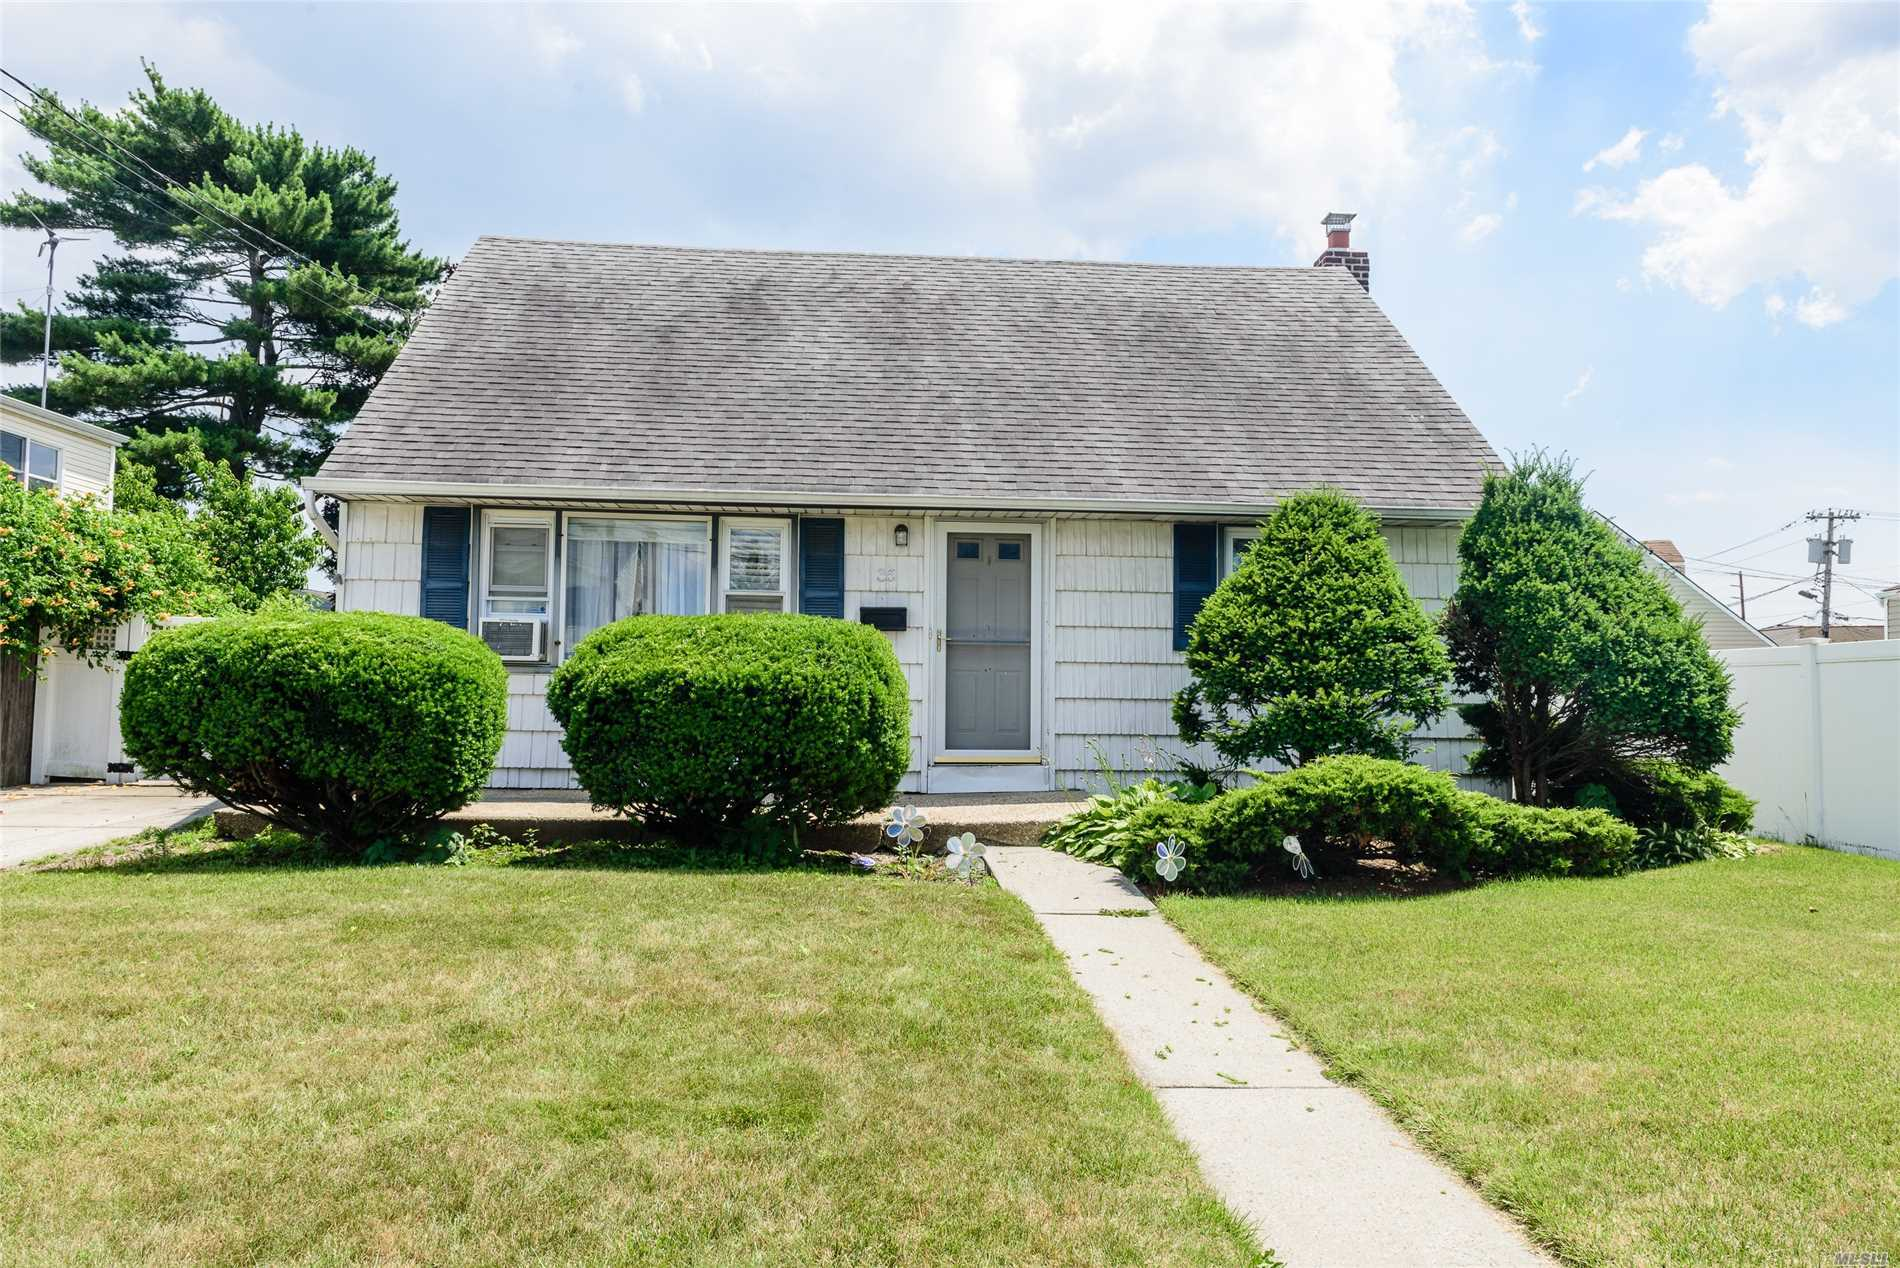 35 Moore Dr - Bethpage, New York